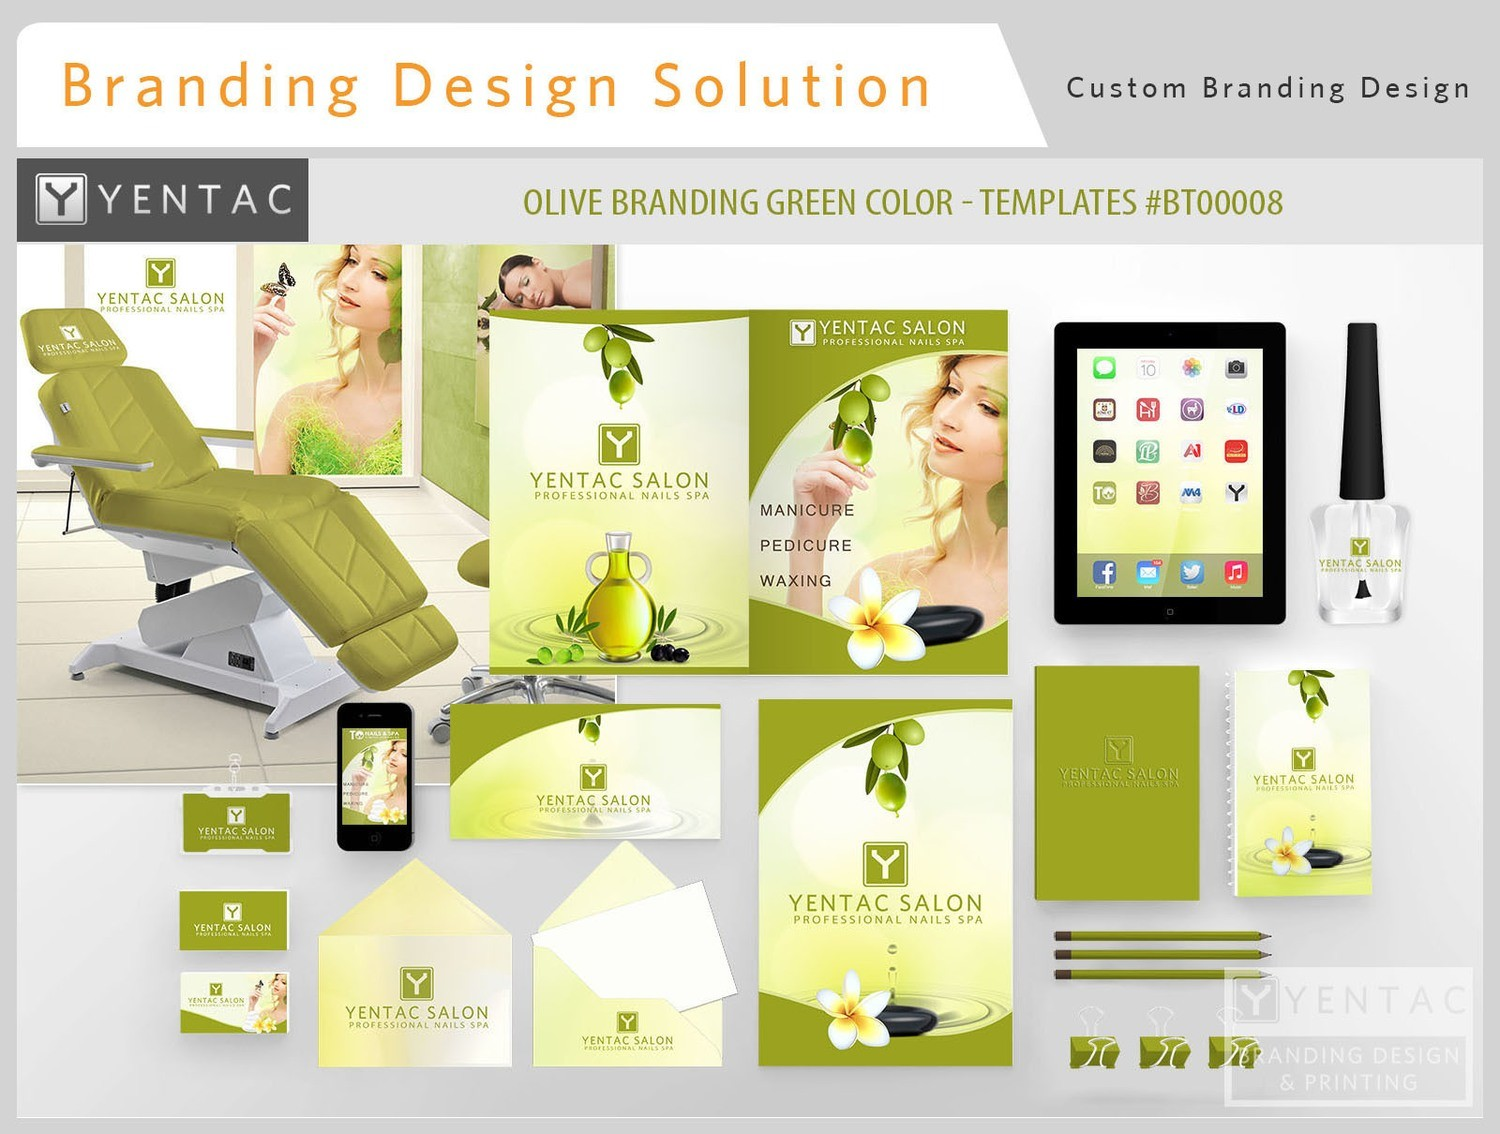 Branding Custom Identity - TO Full Brand Franchise - Olive Green Color Templates:  BT000008 - 3011